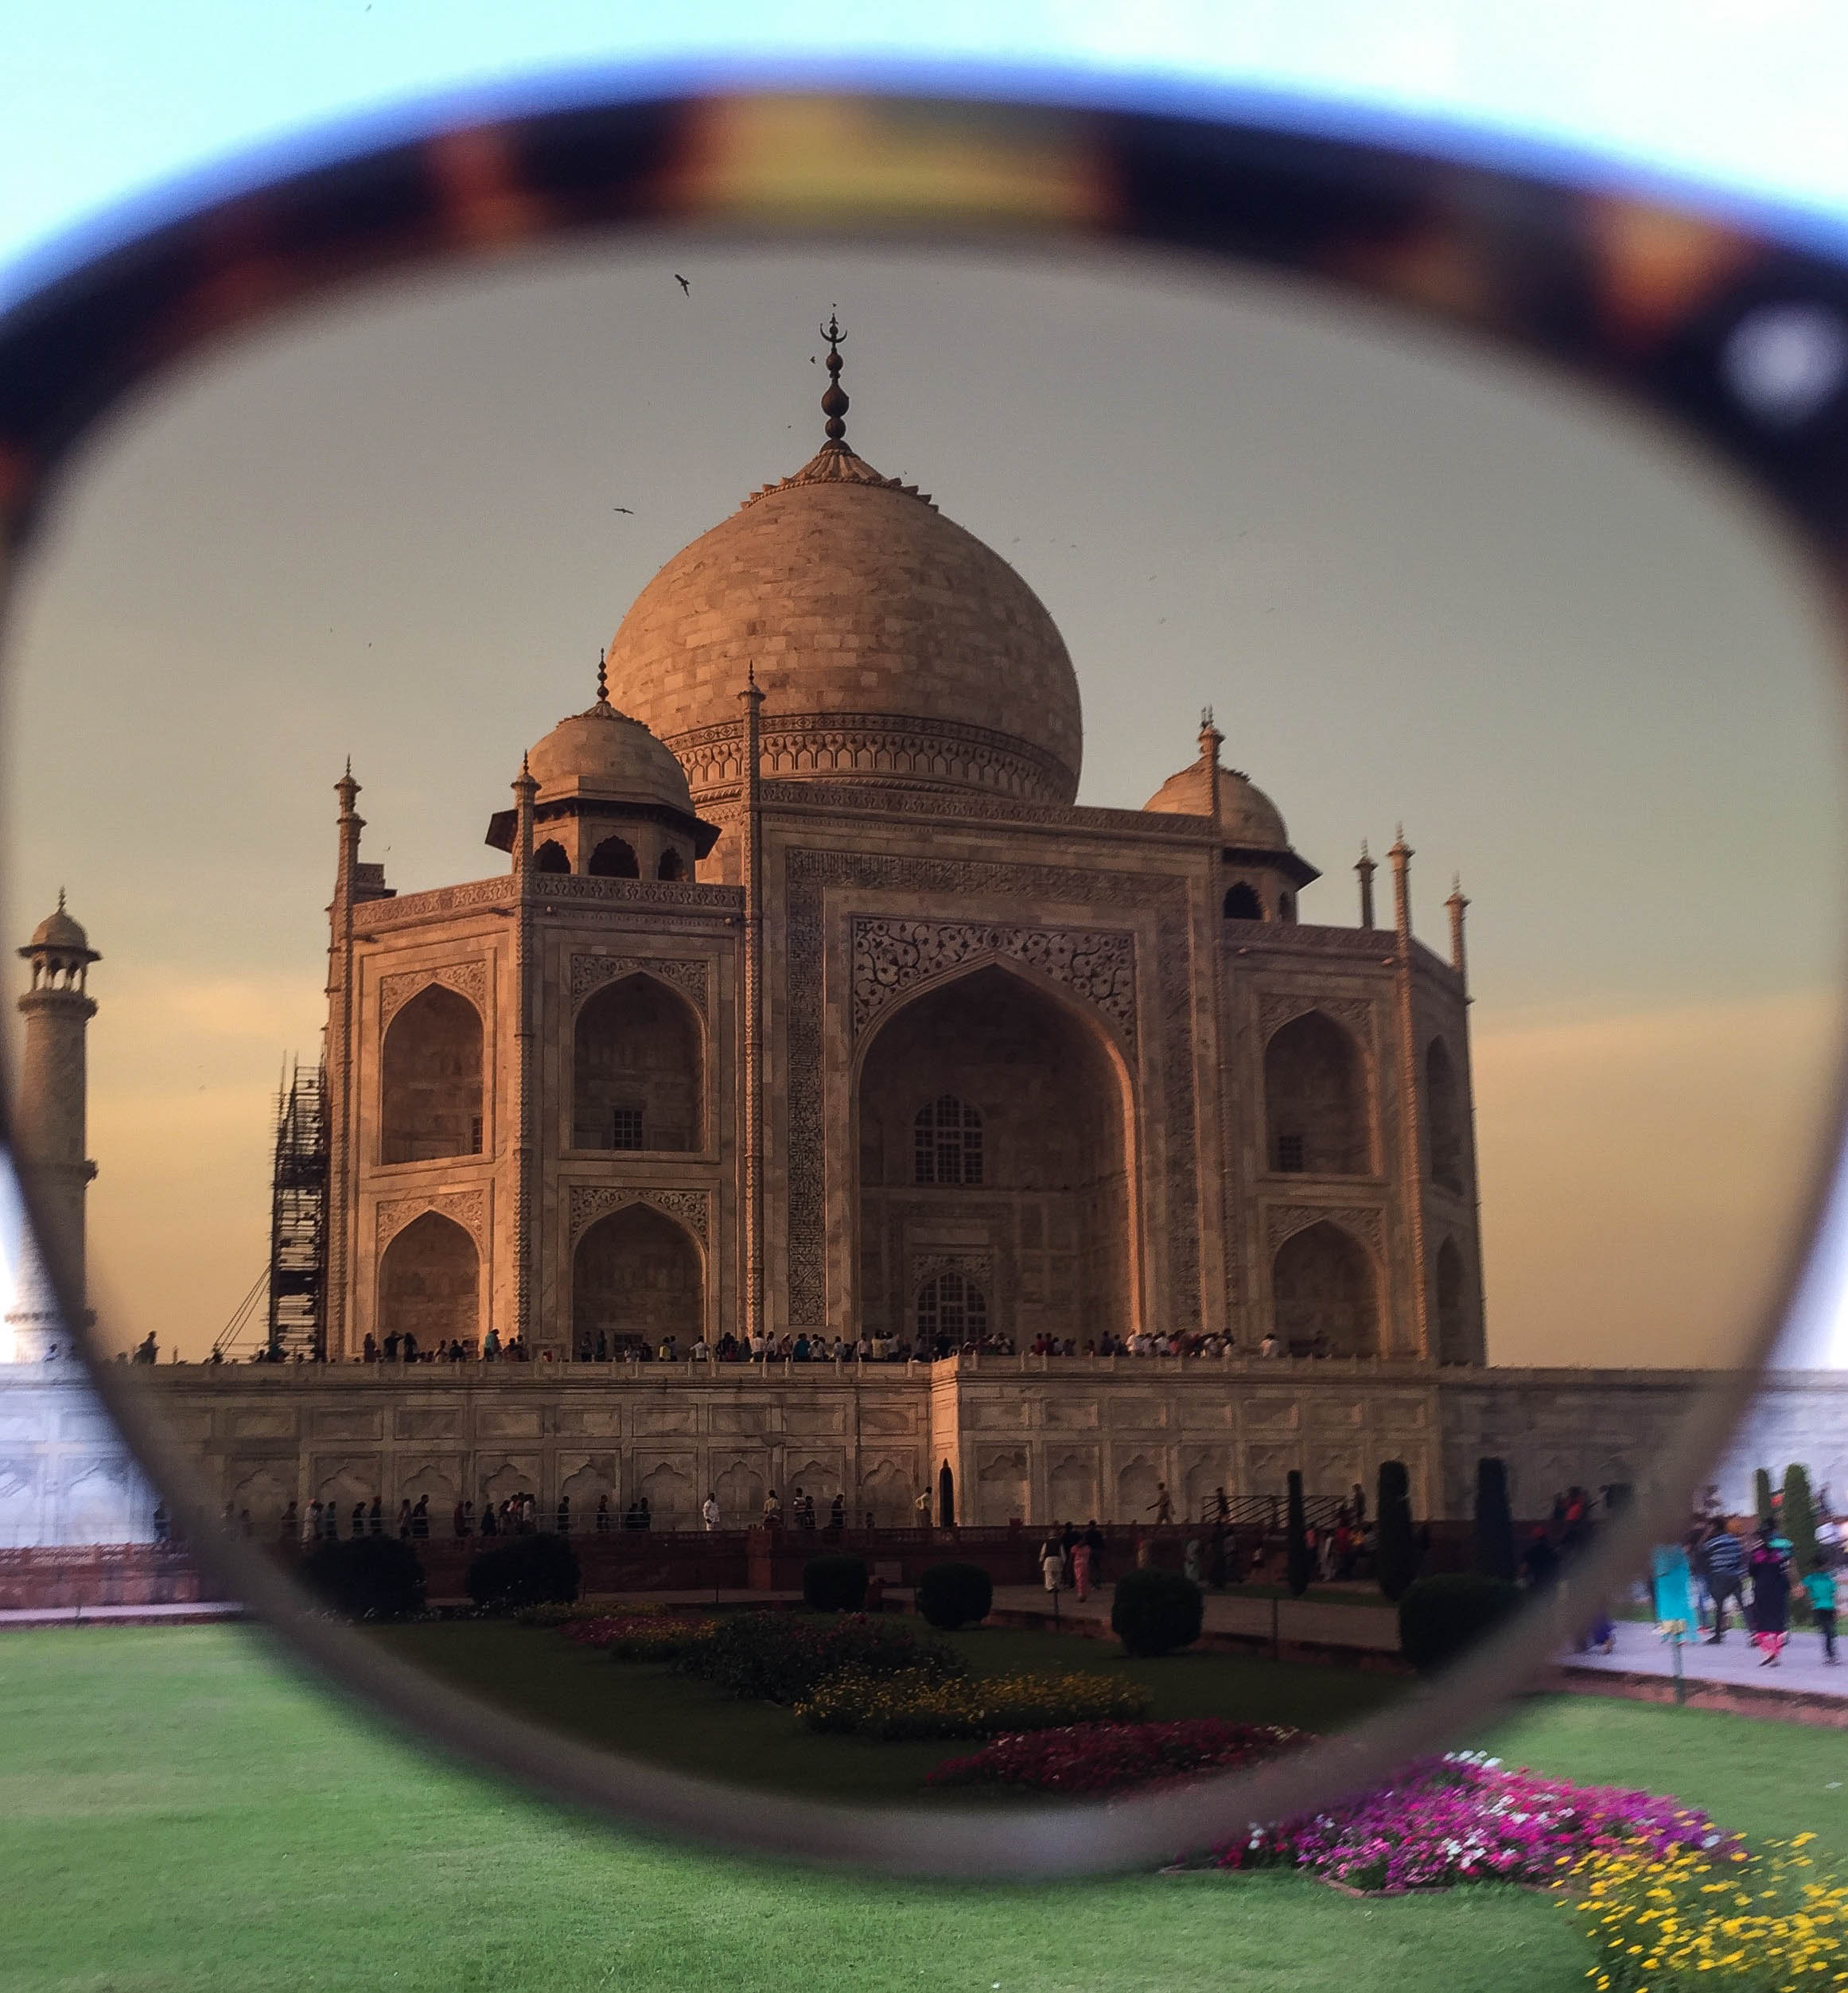 That Taj Mahal looking good through the Alue One polarized mineral glass lens in brown!